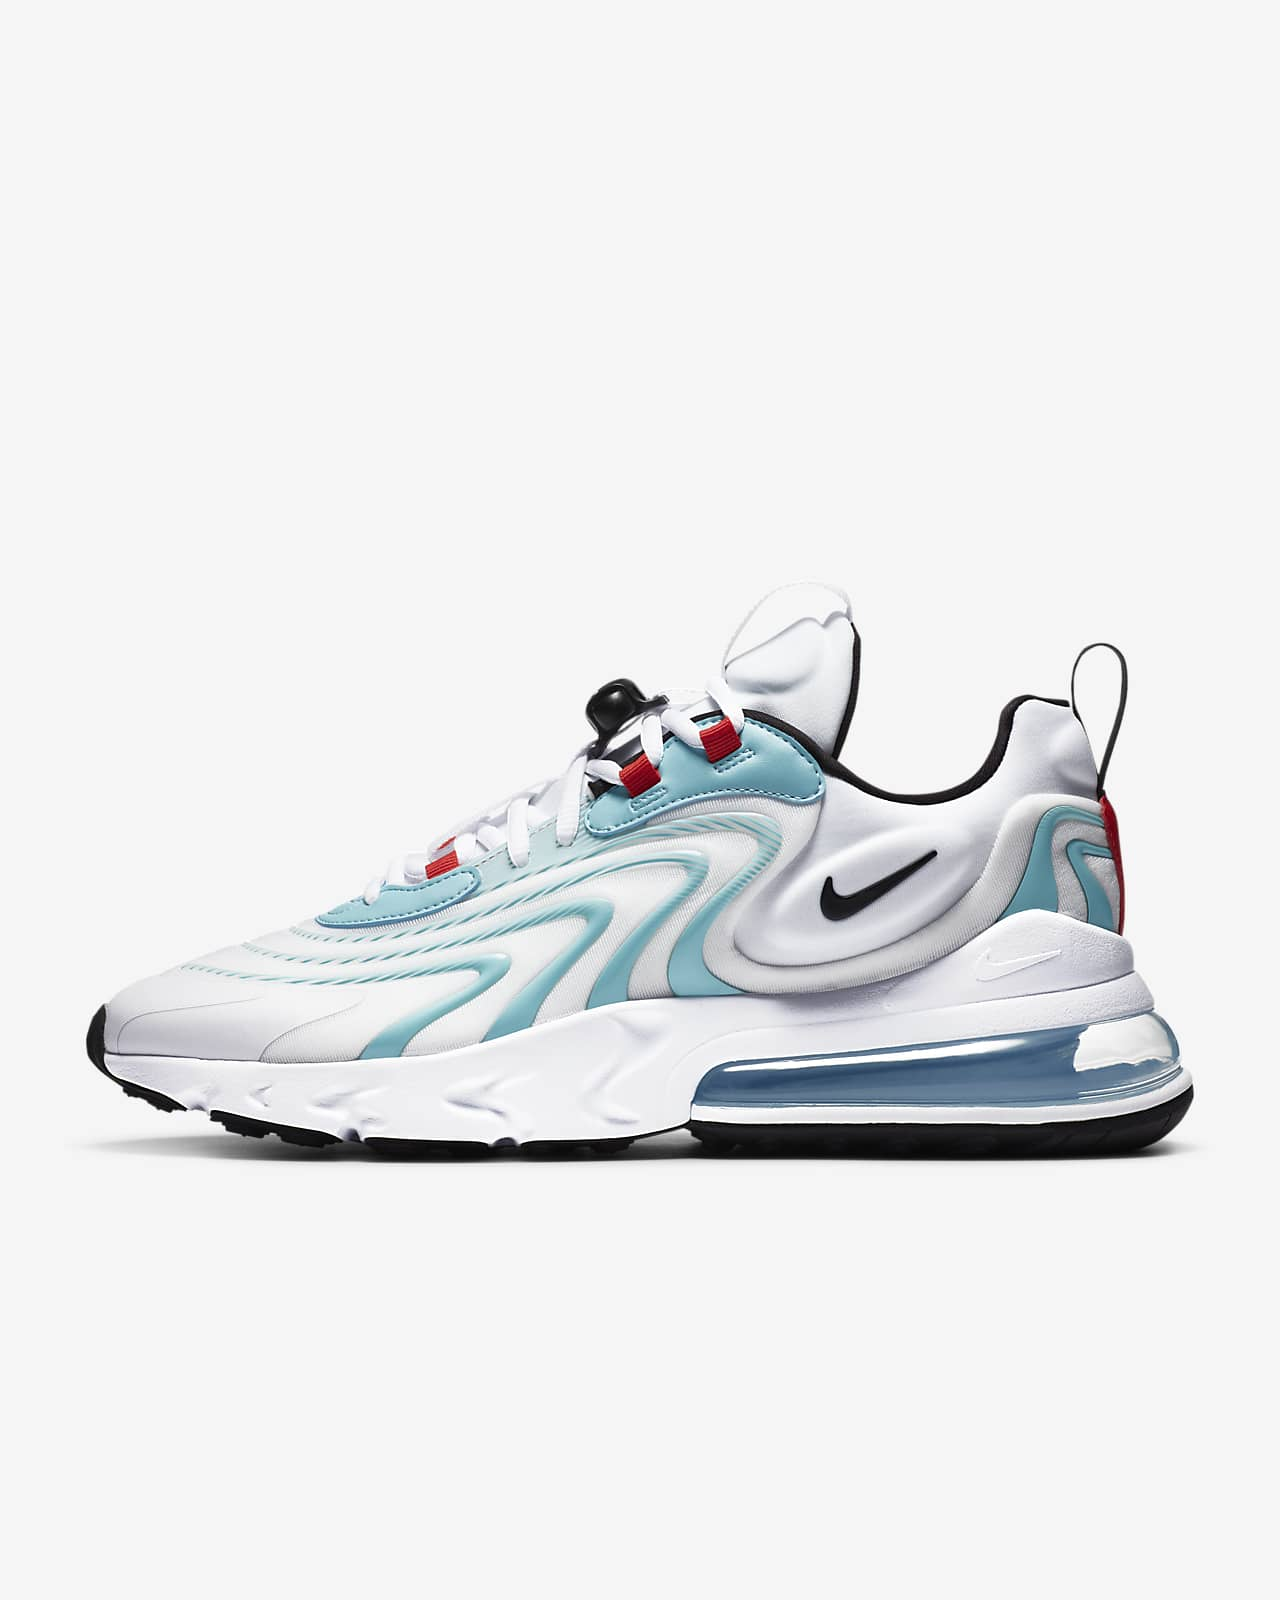 Chaussure Nike Air Max 270 React ENG pour Homme